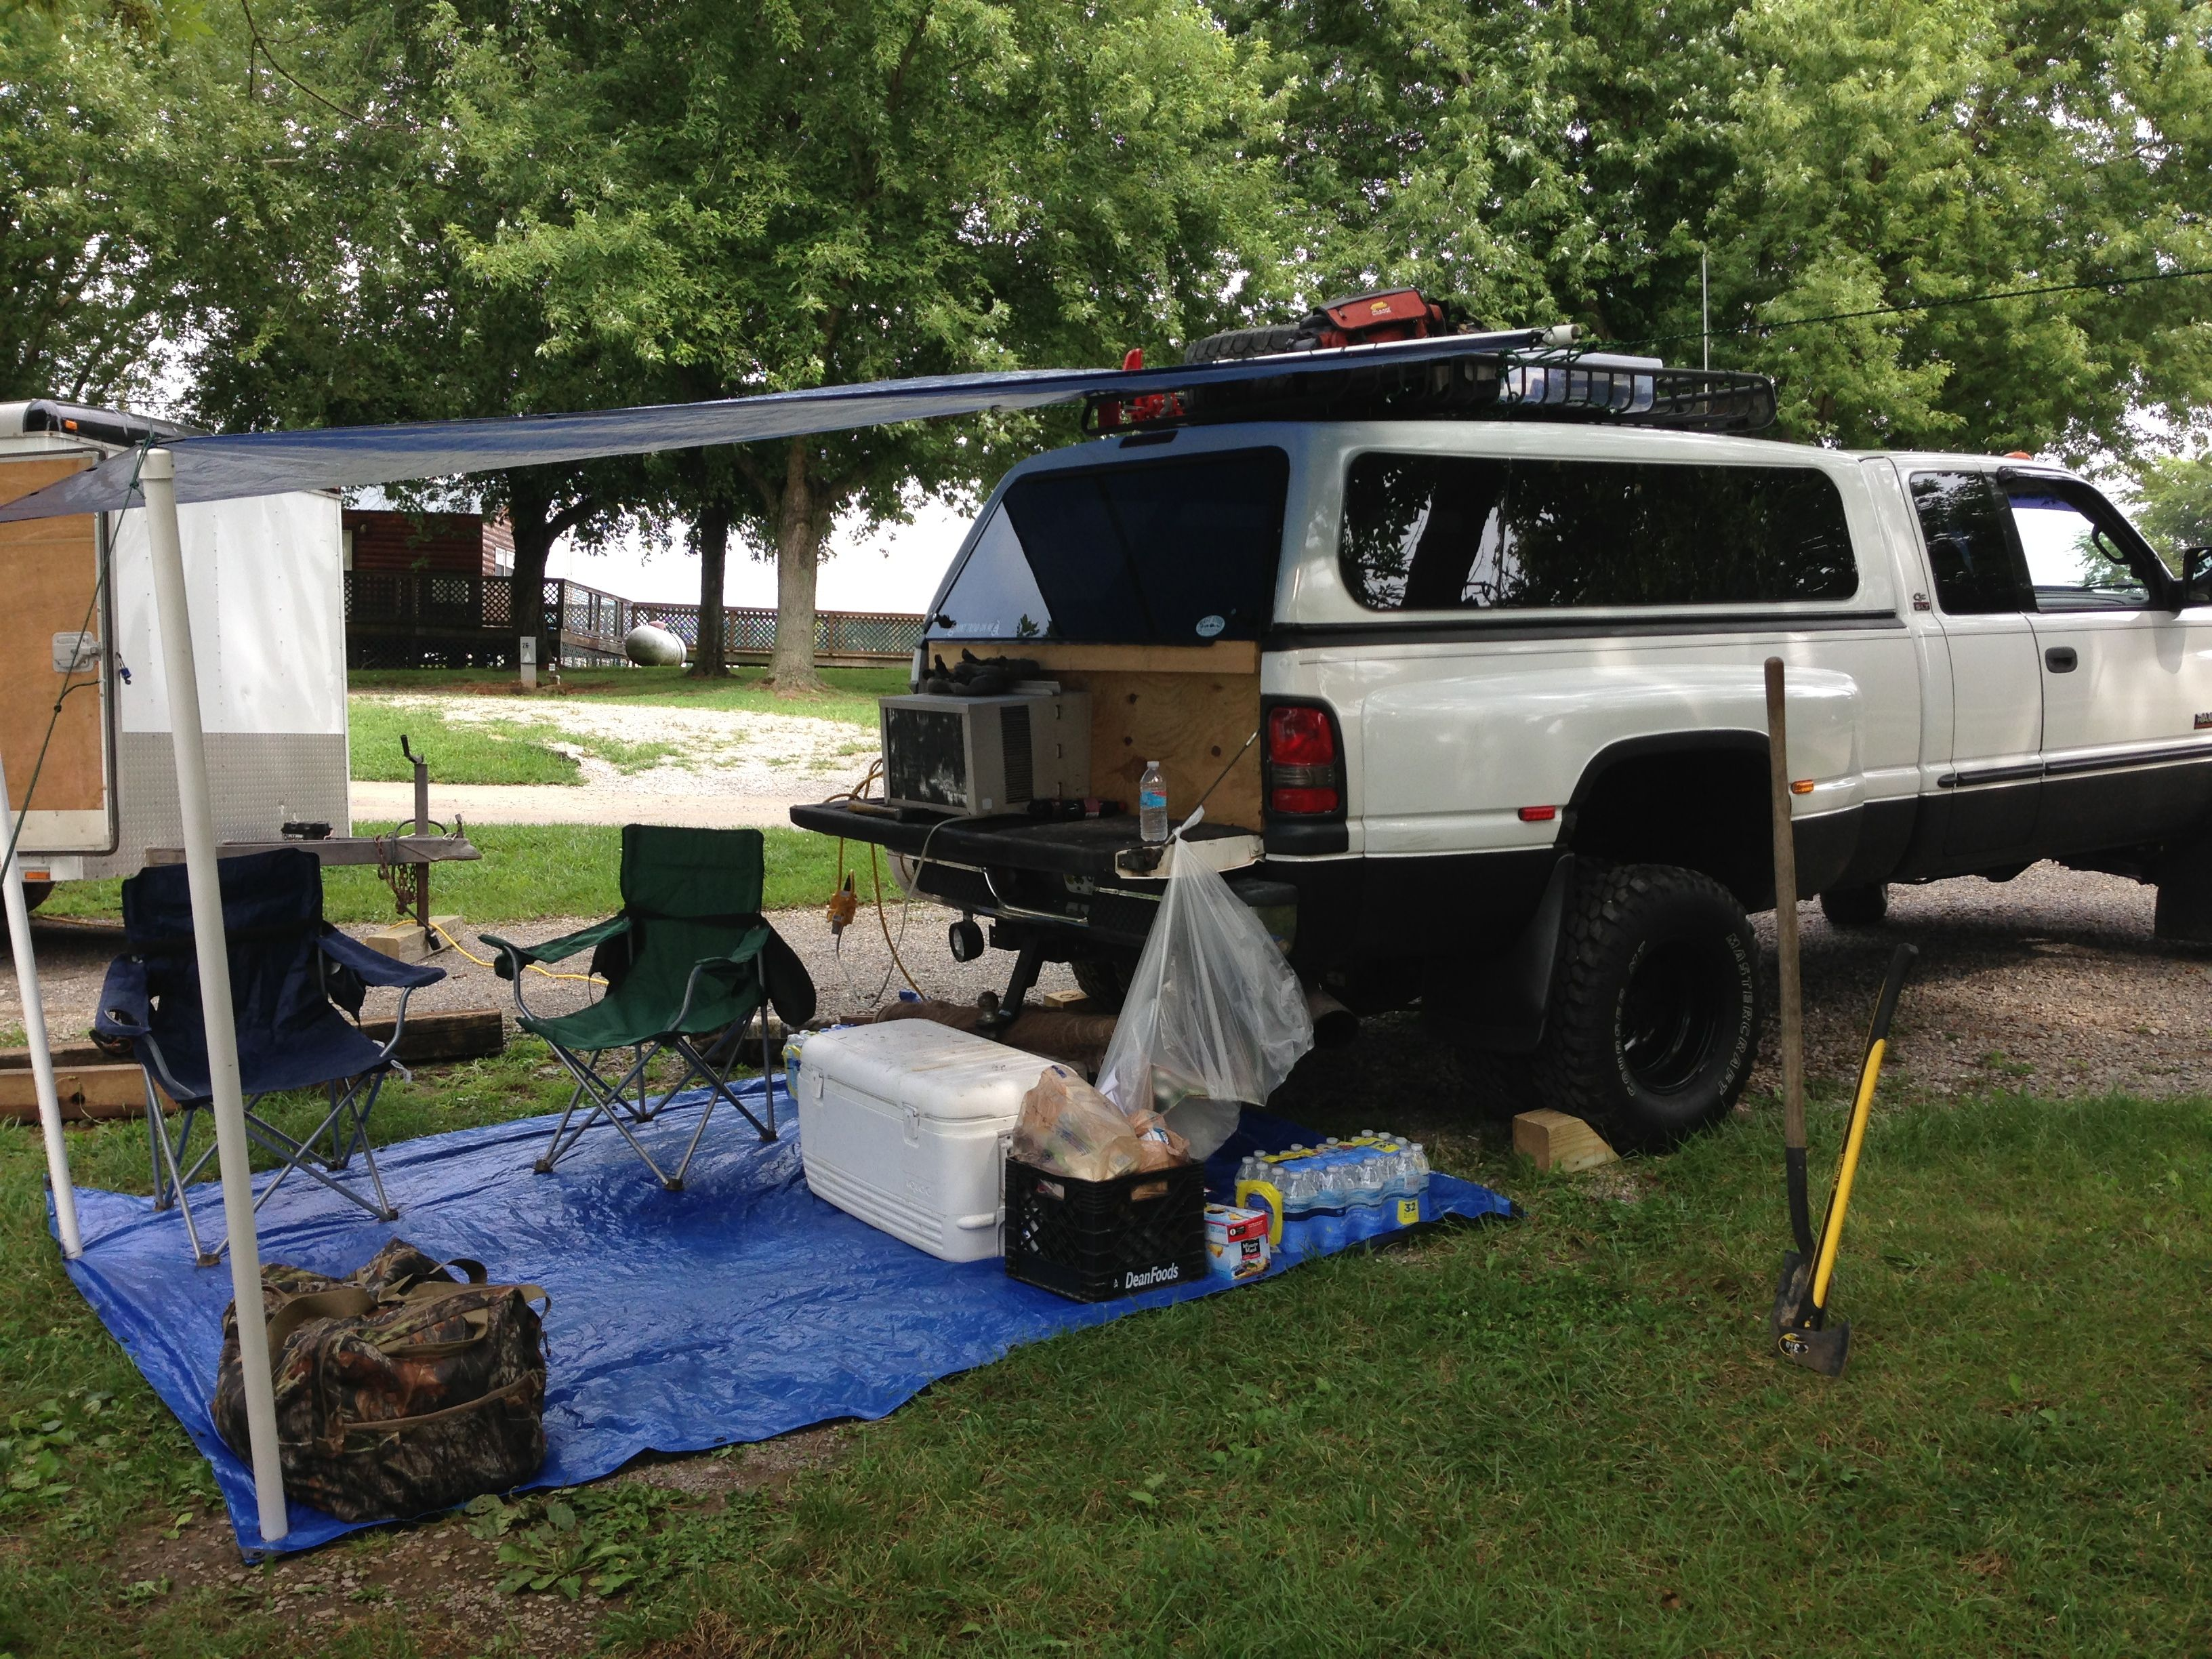 hight resolution of truck camping air conditioner and queen size air mattress inside